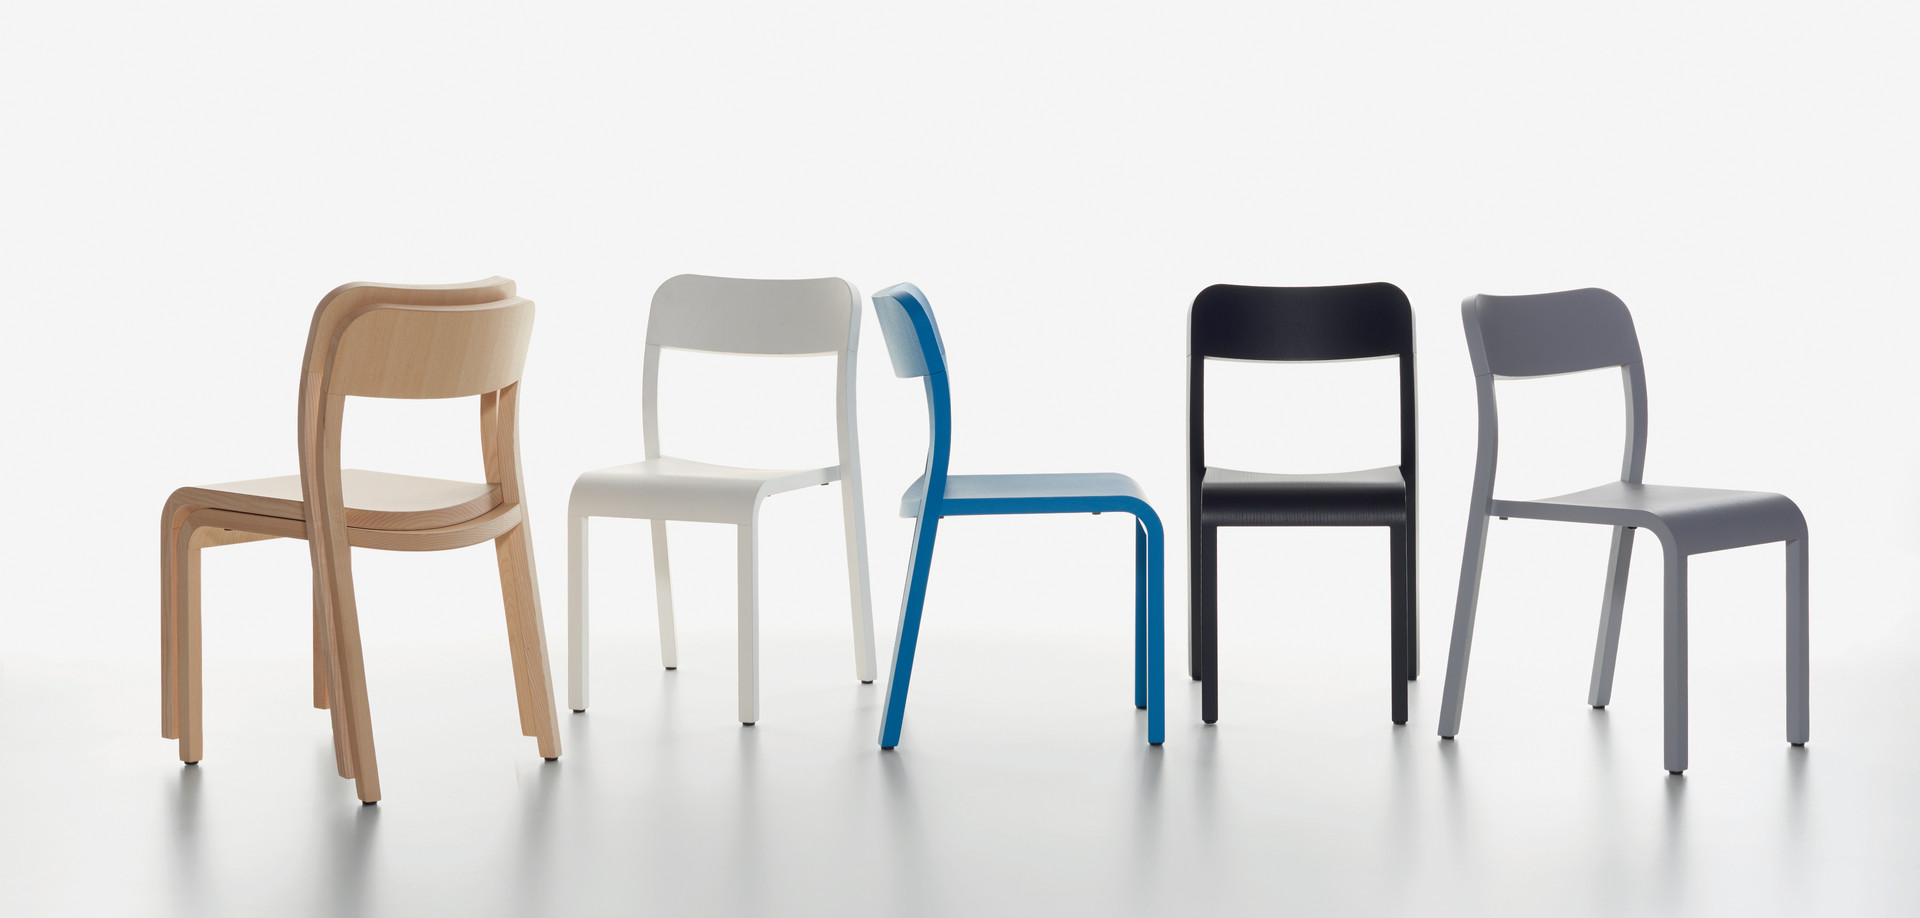 Plank - BLOCCO chair in the colors ash natural, white, blue, black, grey.